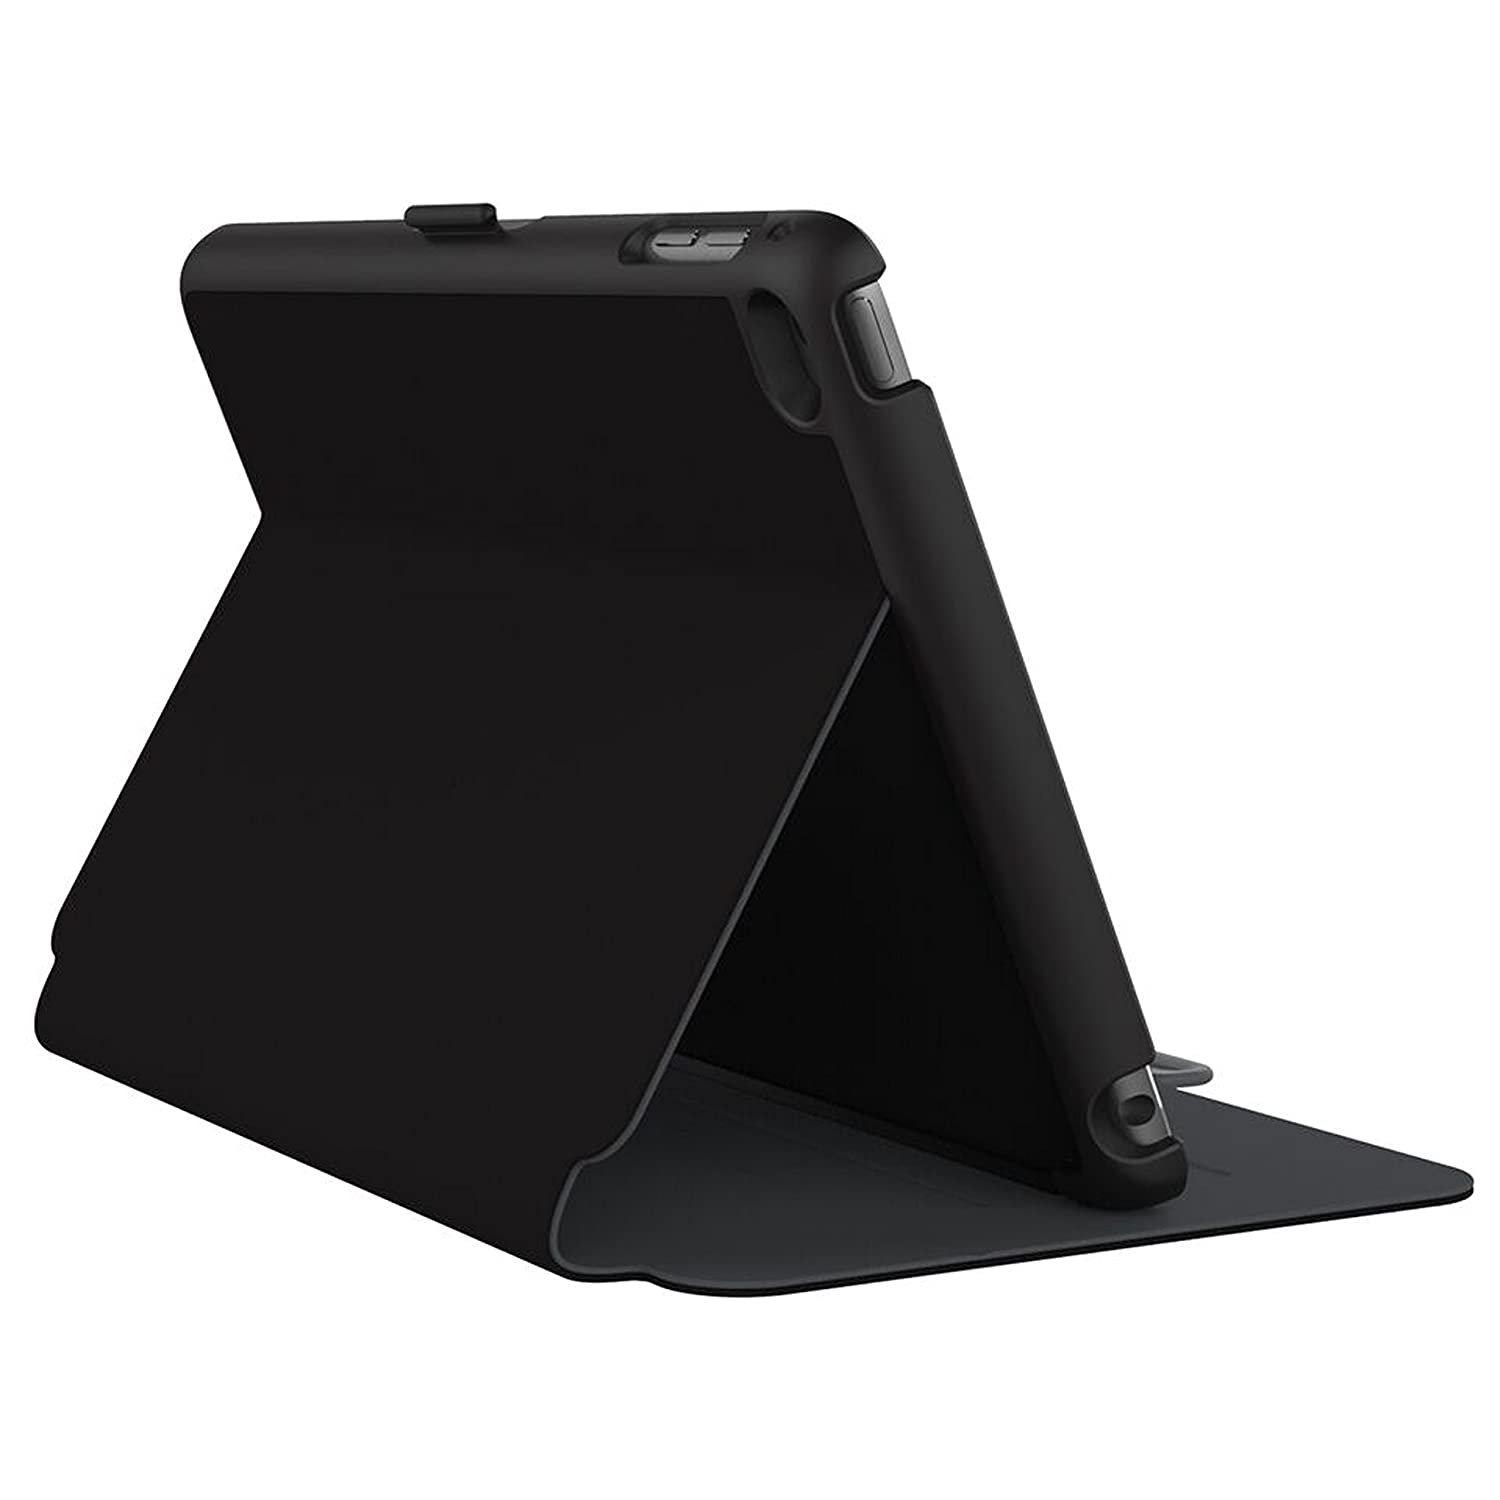 promo code 26237 49bc7 Speck Products StyleFolio Case and Stand for iPad Mini 4, Black/Slate Grey